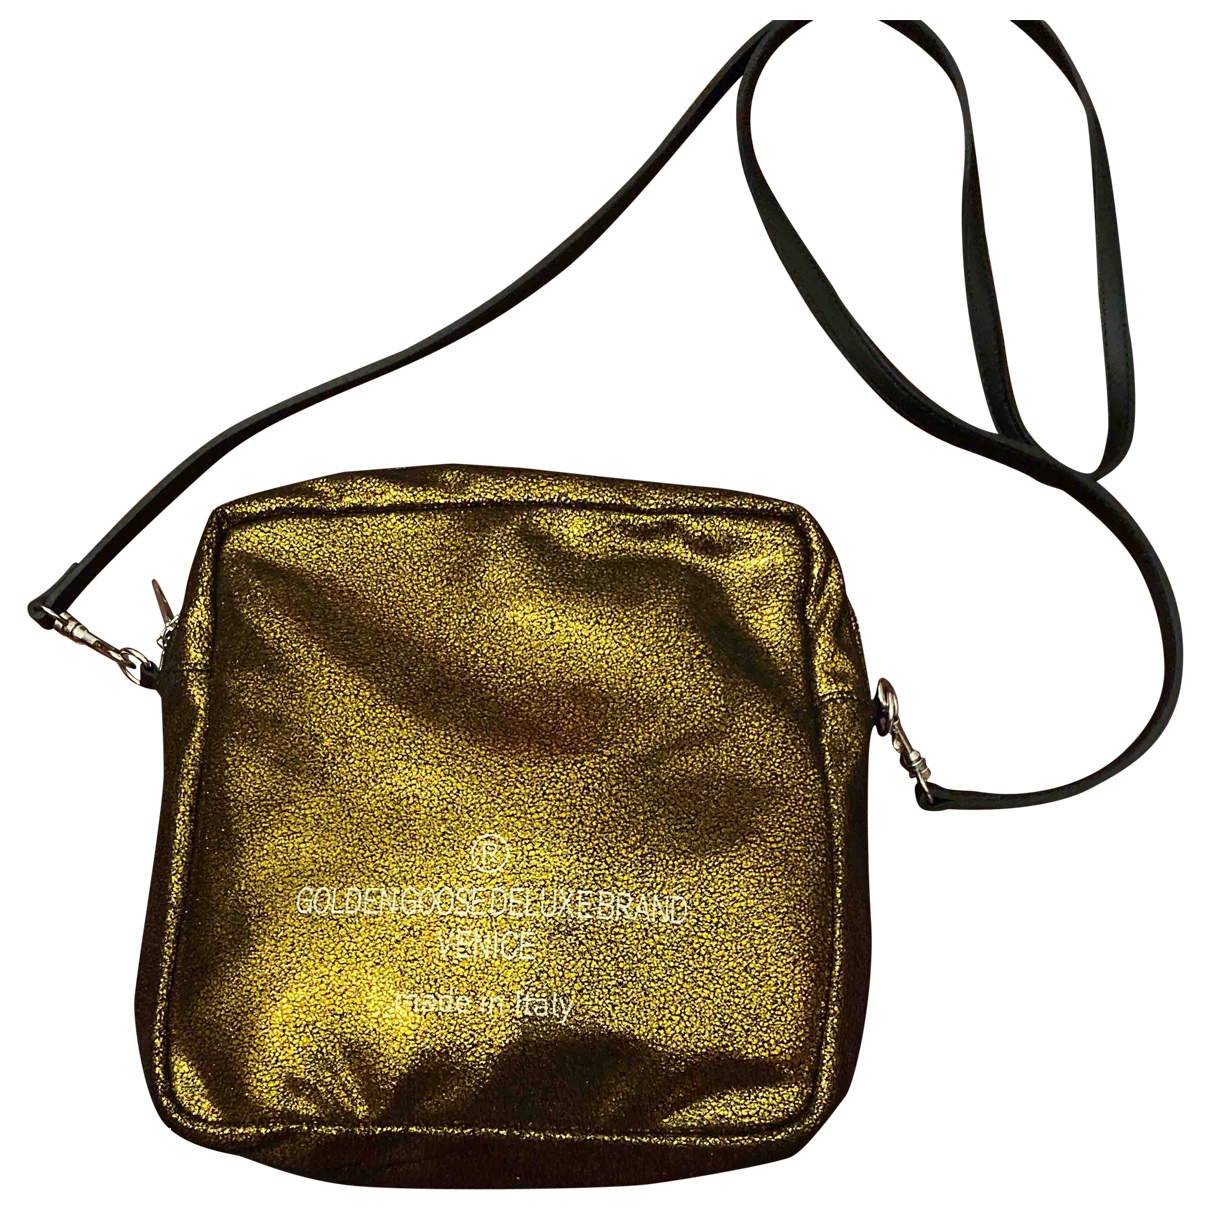 Golden Goose \N Gold Leather Clutch bag for Women \N